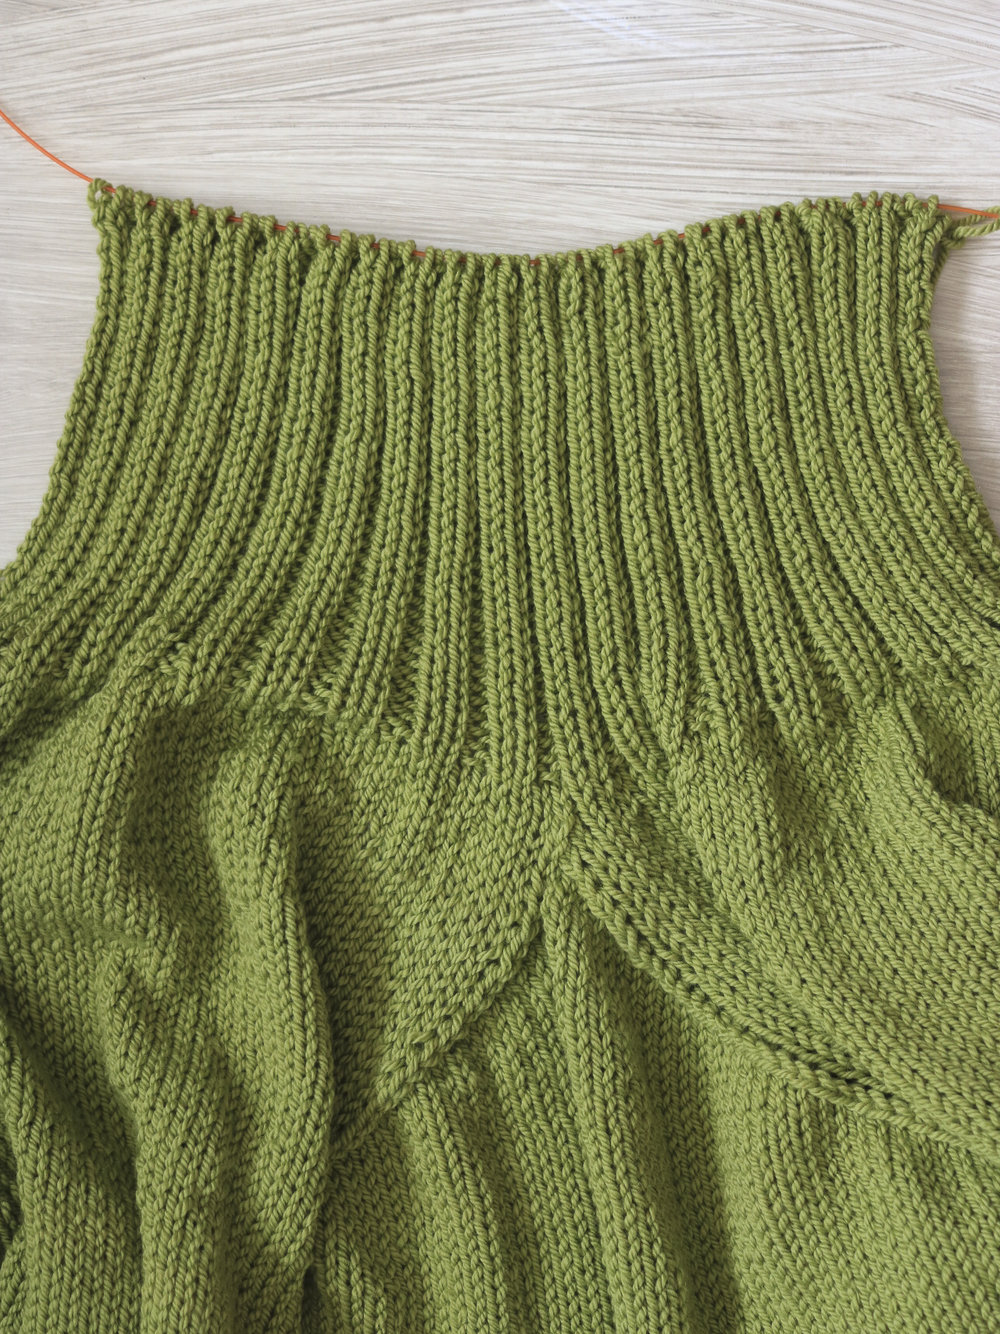 Neck rib on the Carbeth Cardigan using Baa Baa Bulky yarn from Ewe Ewe.